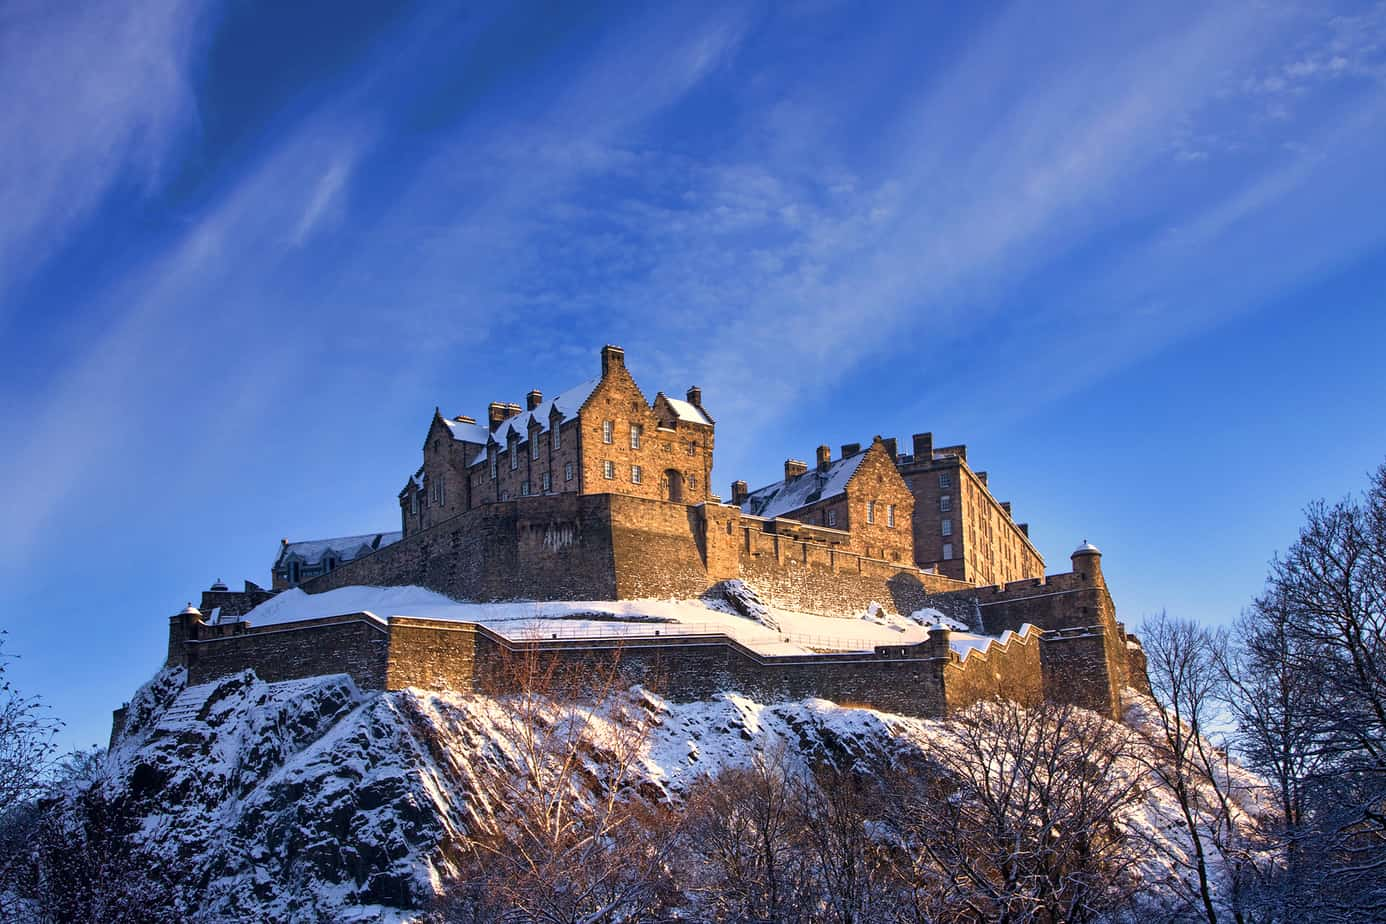 scotland is one of the best honeymoon destinations for adventurous couples - image of edinburgh castle surrounded by snow